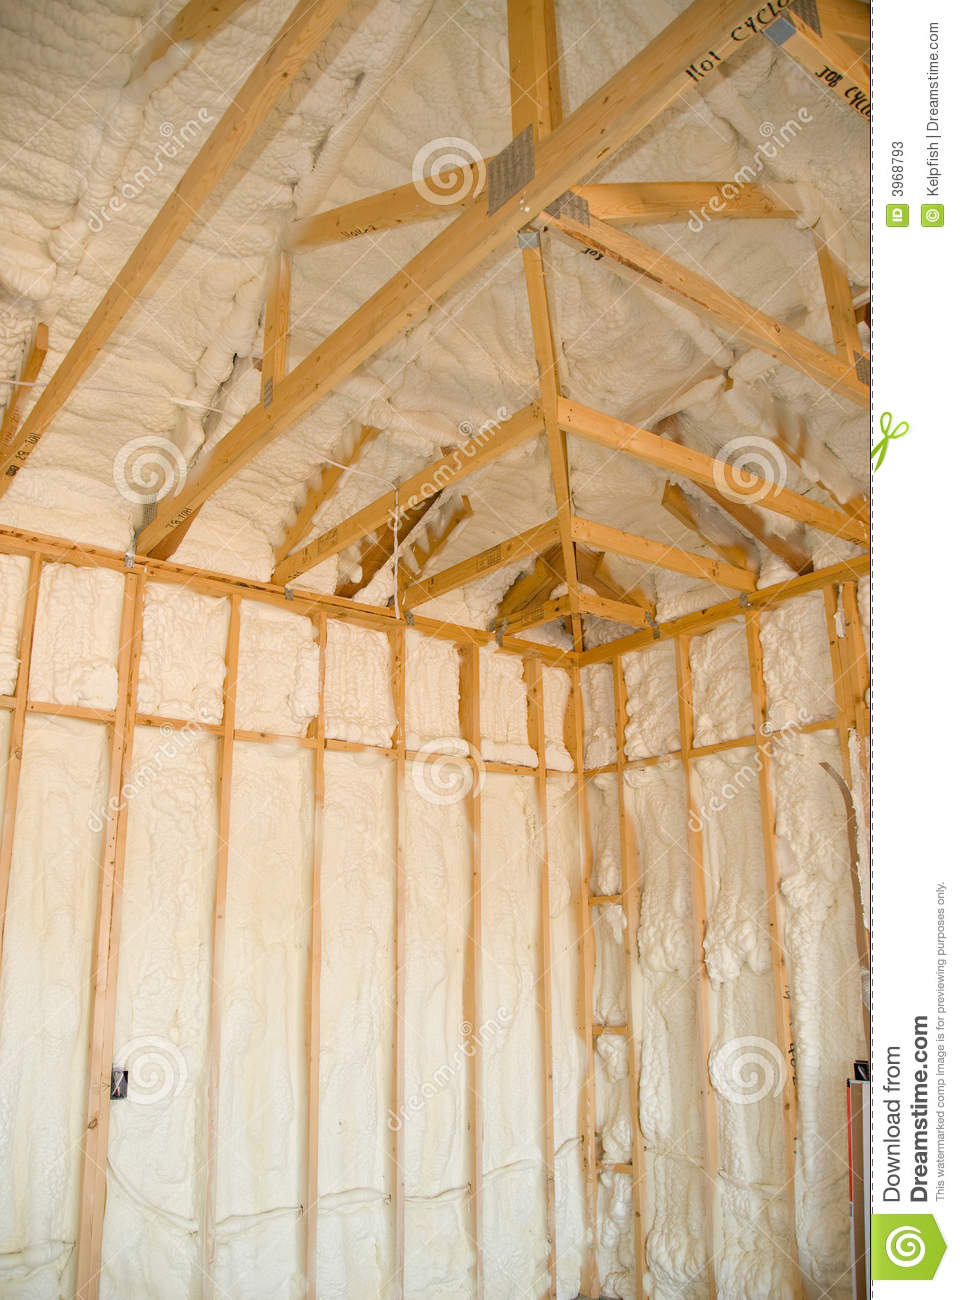 new home insulation stock photos image 3968793